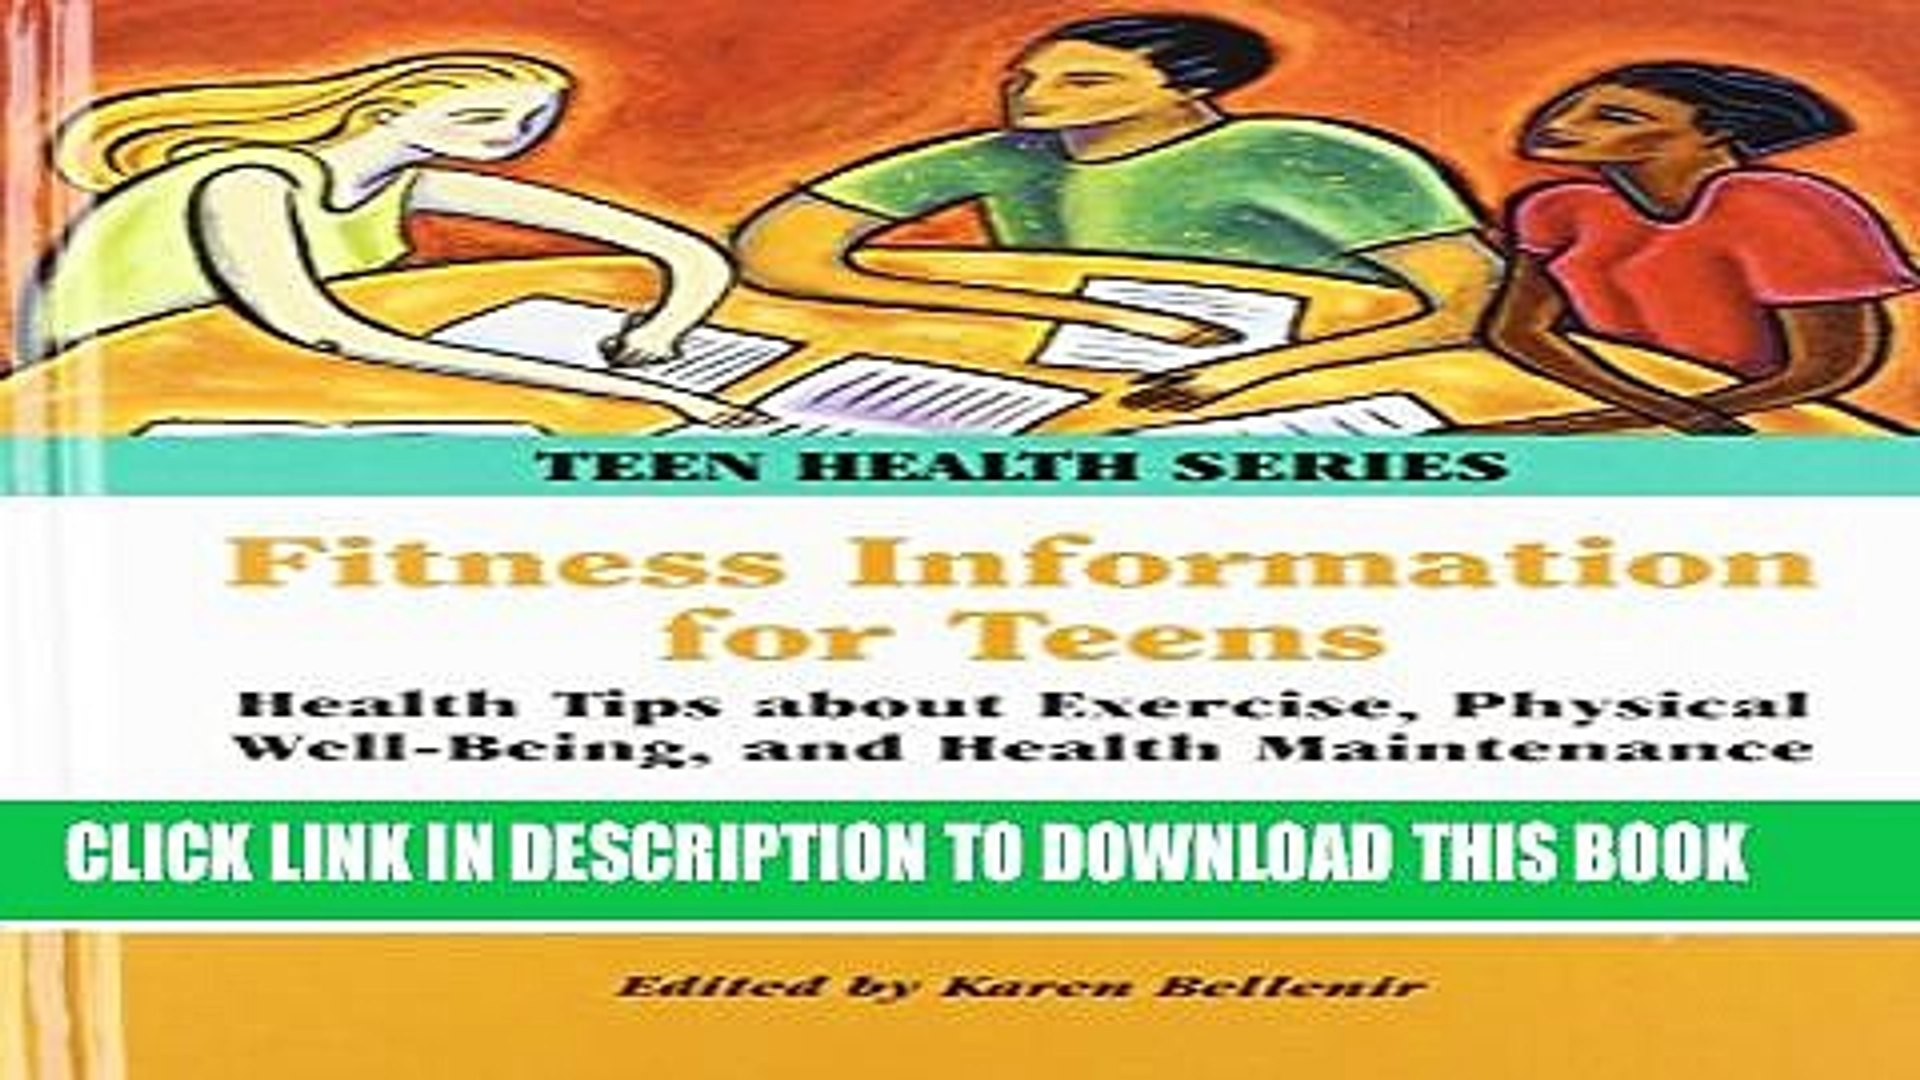 [PDF] Fitness Information for Teens: Health Tips about Exercise, Physical Well-Being, and Health